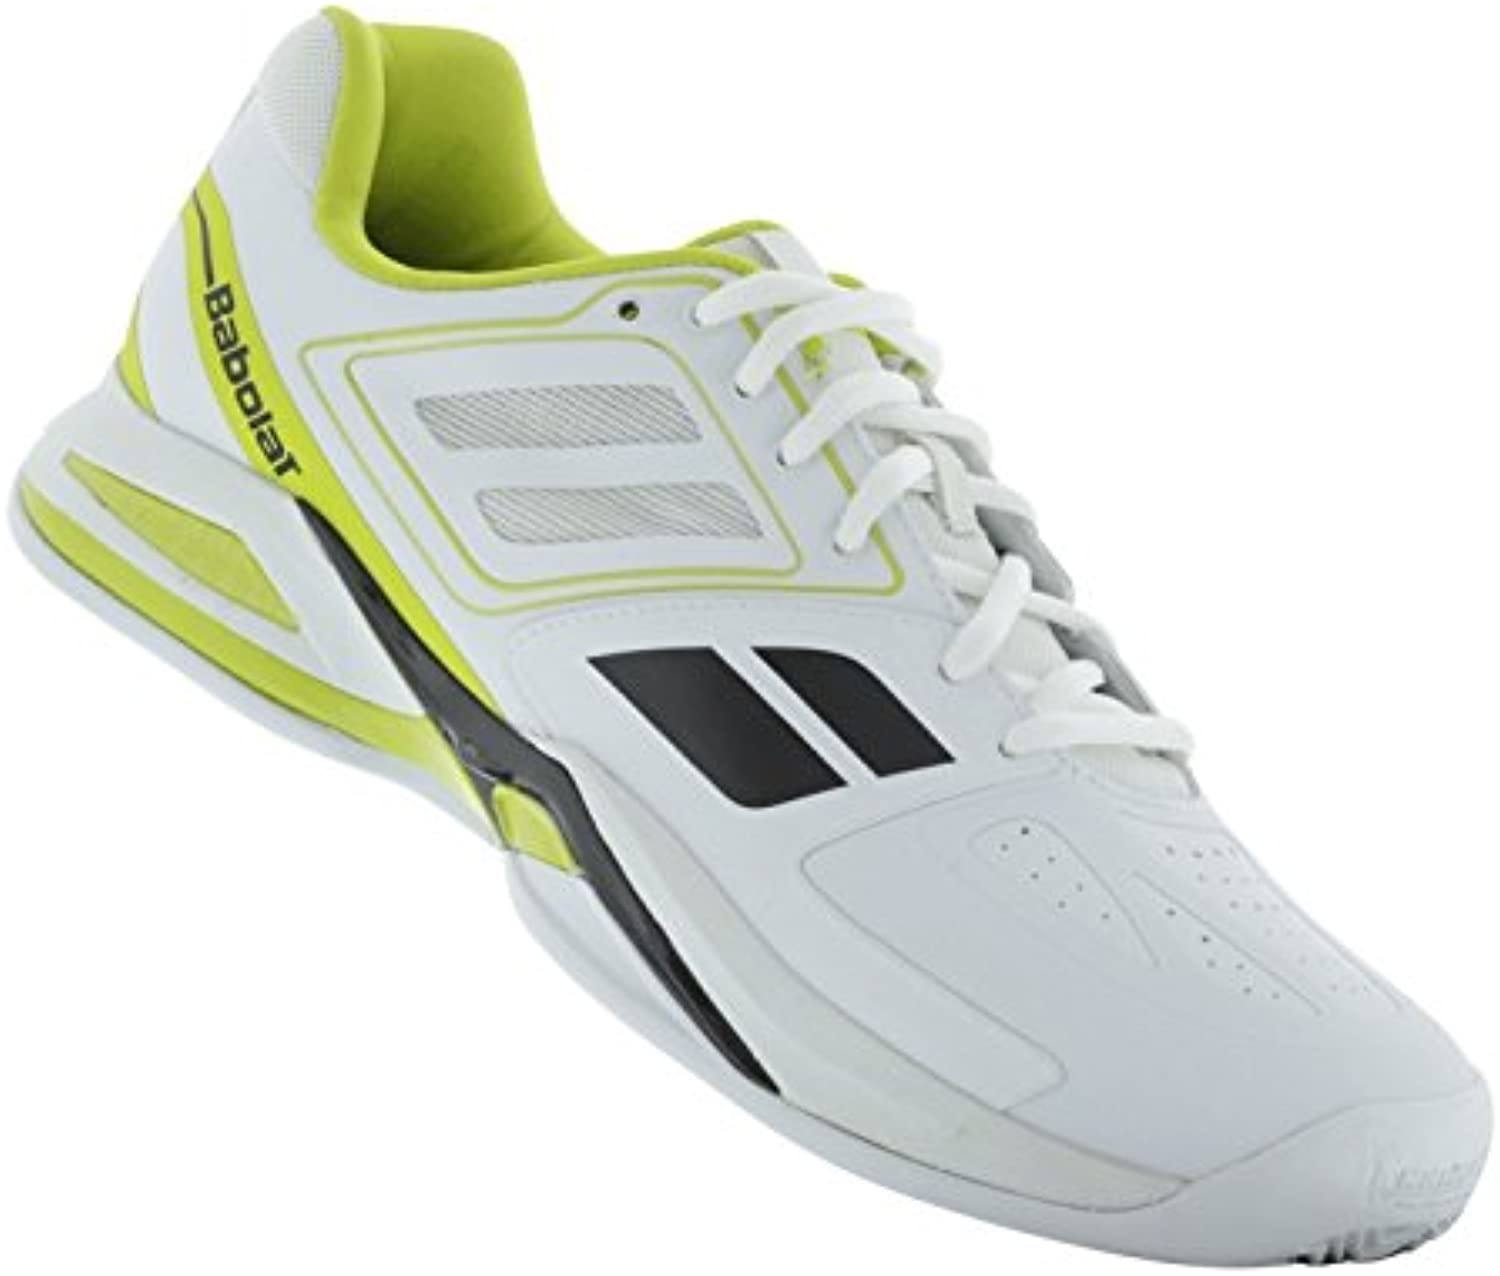 BABOLAT Propulse Team BPM Clay Herren Tennisschuhe  Modell 2015